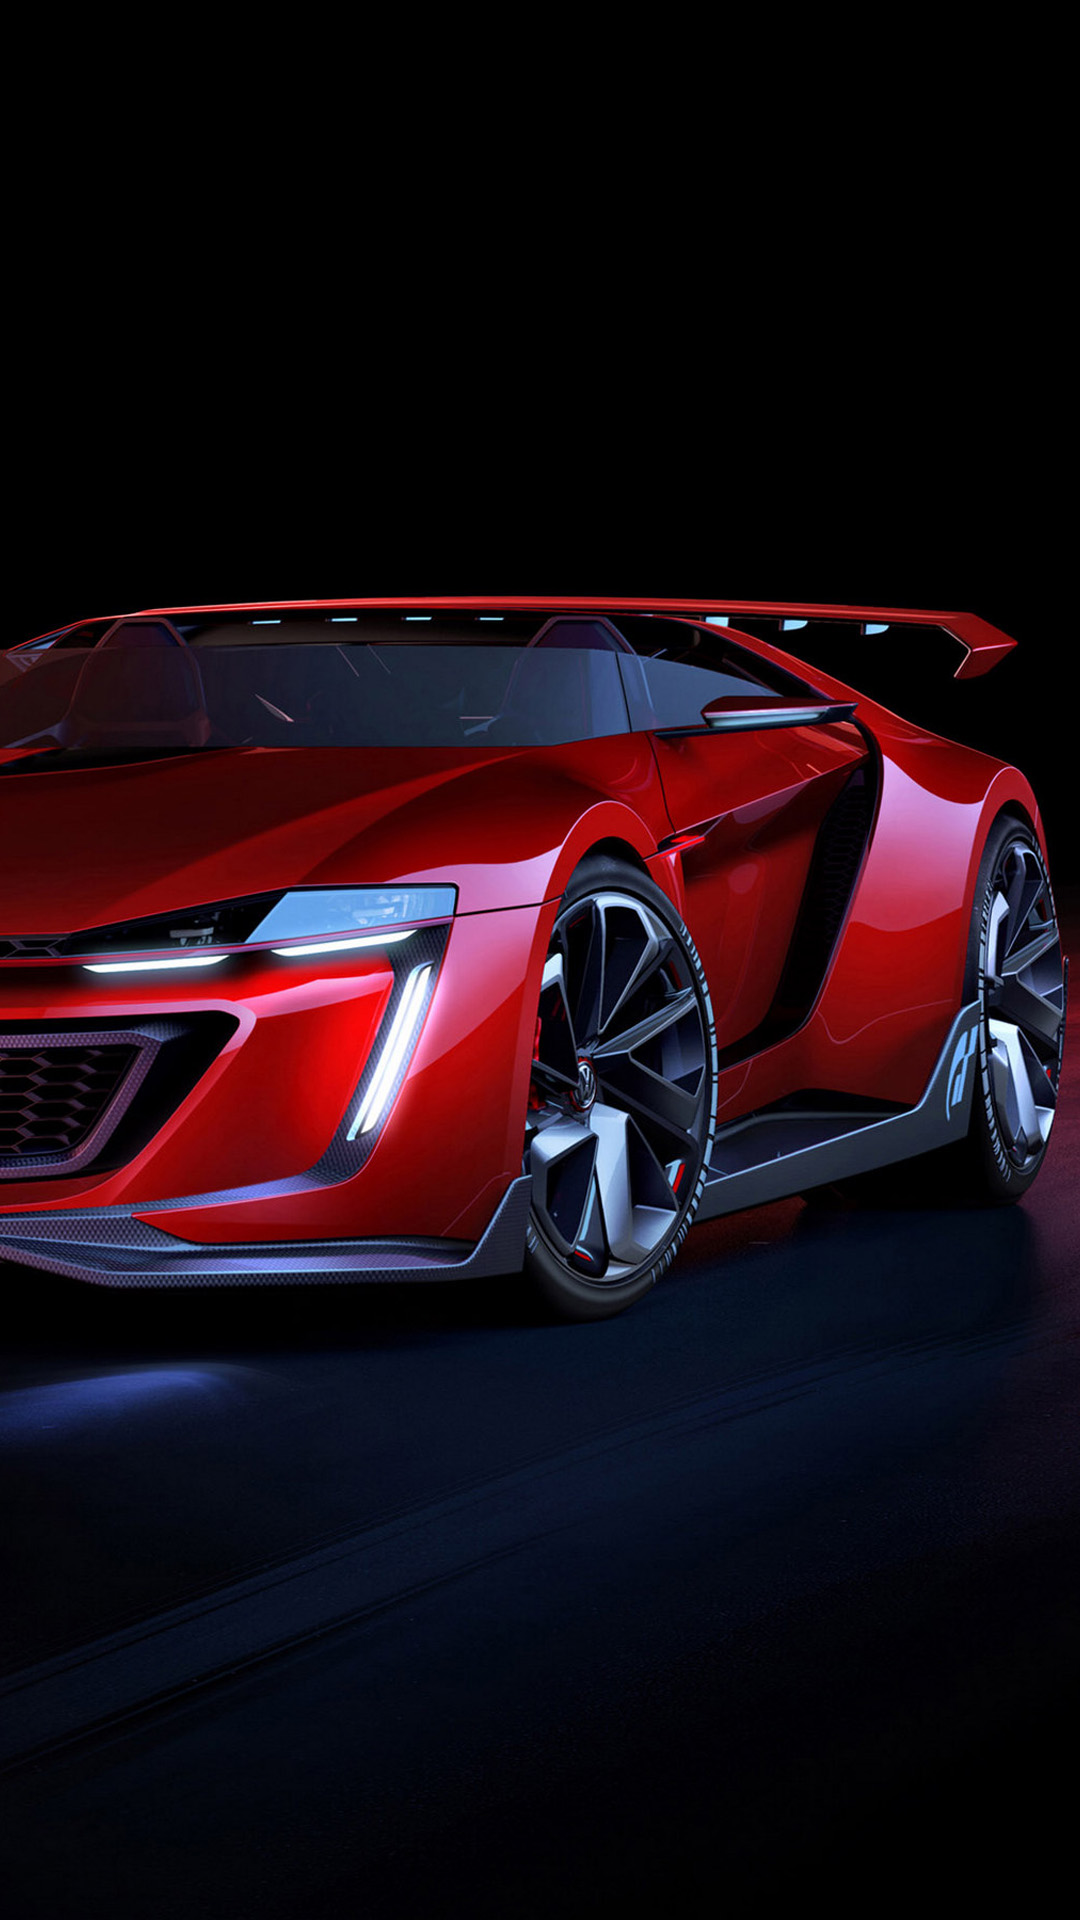 Pretty Volkswagen Gti Roadster Positive Iphone 6 Plus - 4k Cars Wallpaper Iphone , HD Wallpaper & Backgrounds